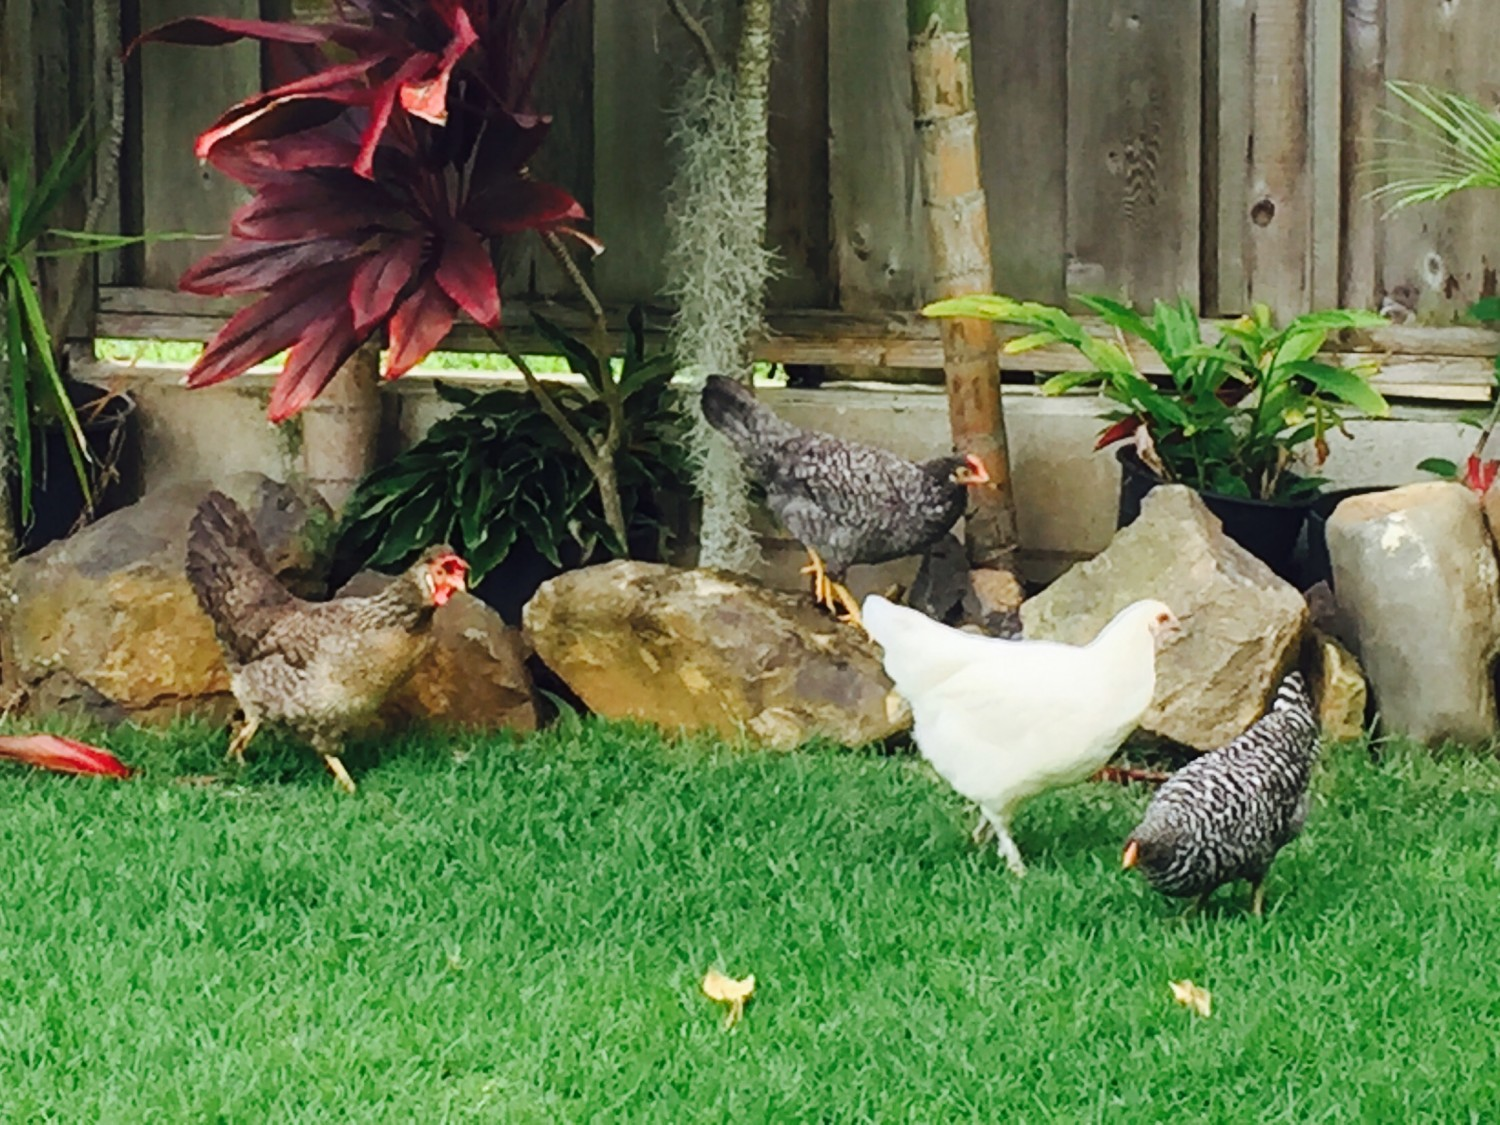 Dr. Dale's backyard Chickens in Kailua - Dale Veterinary Mobile Clinic